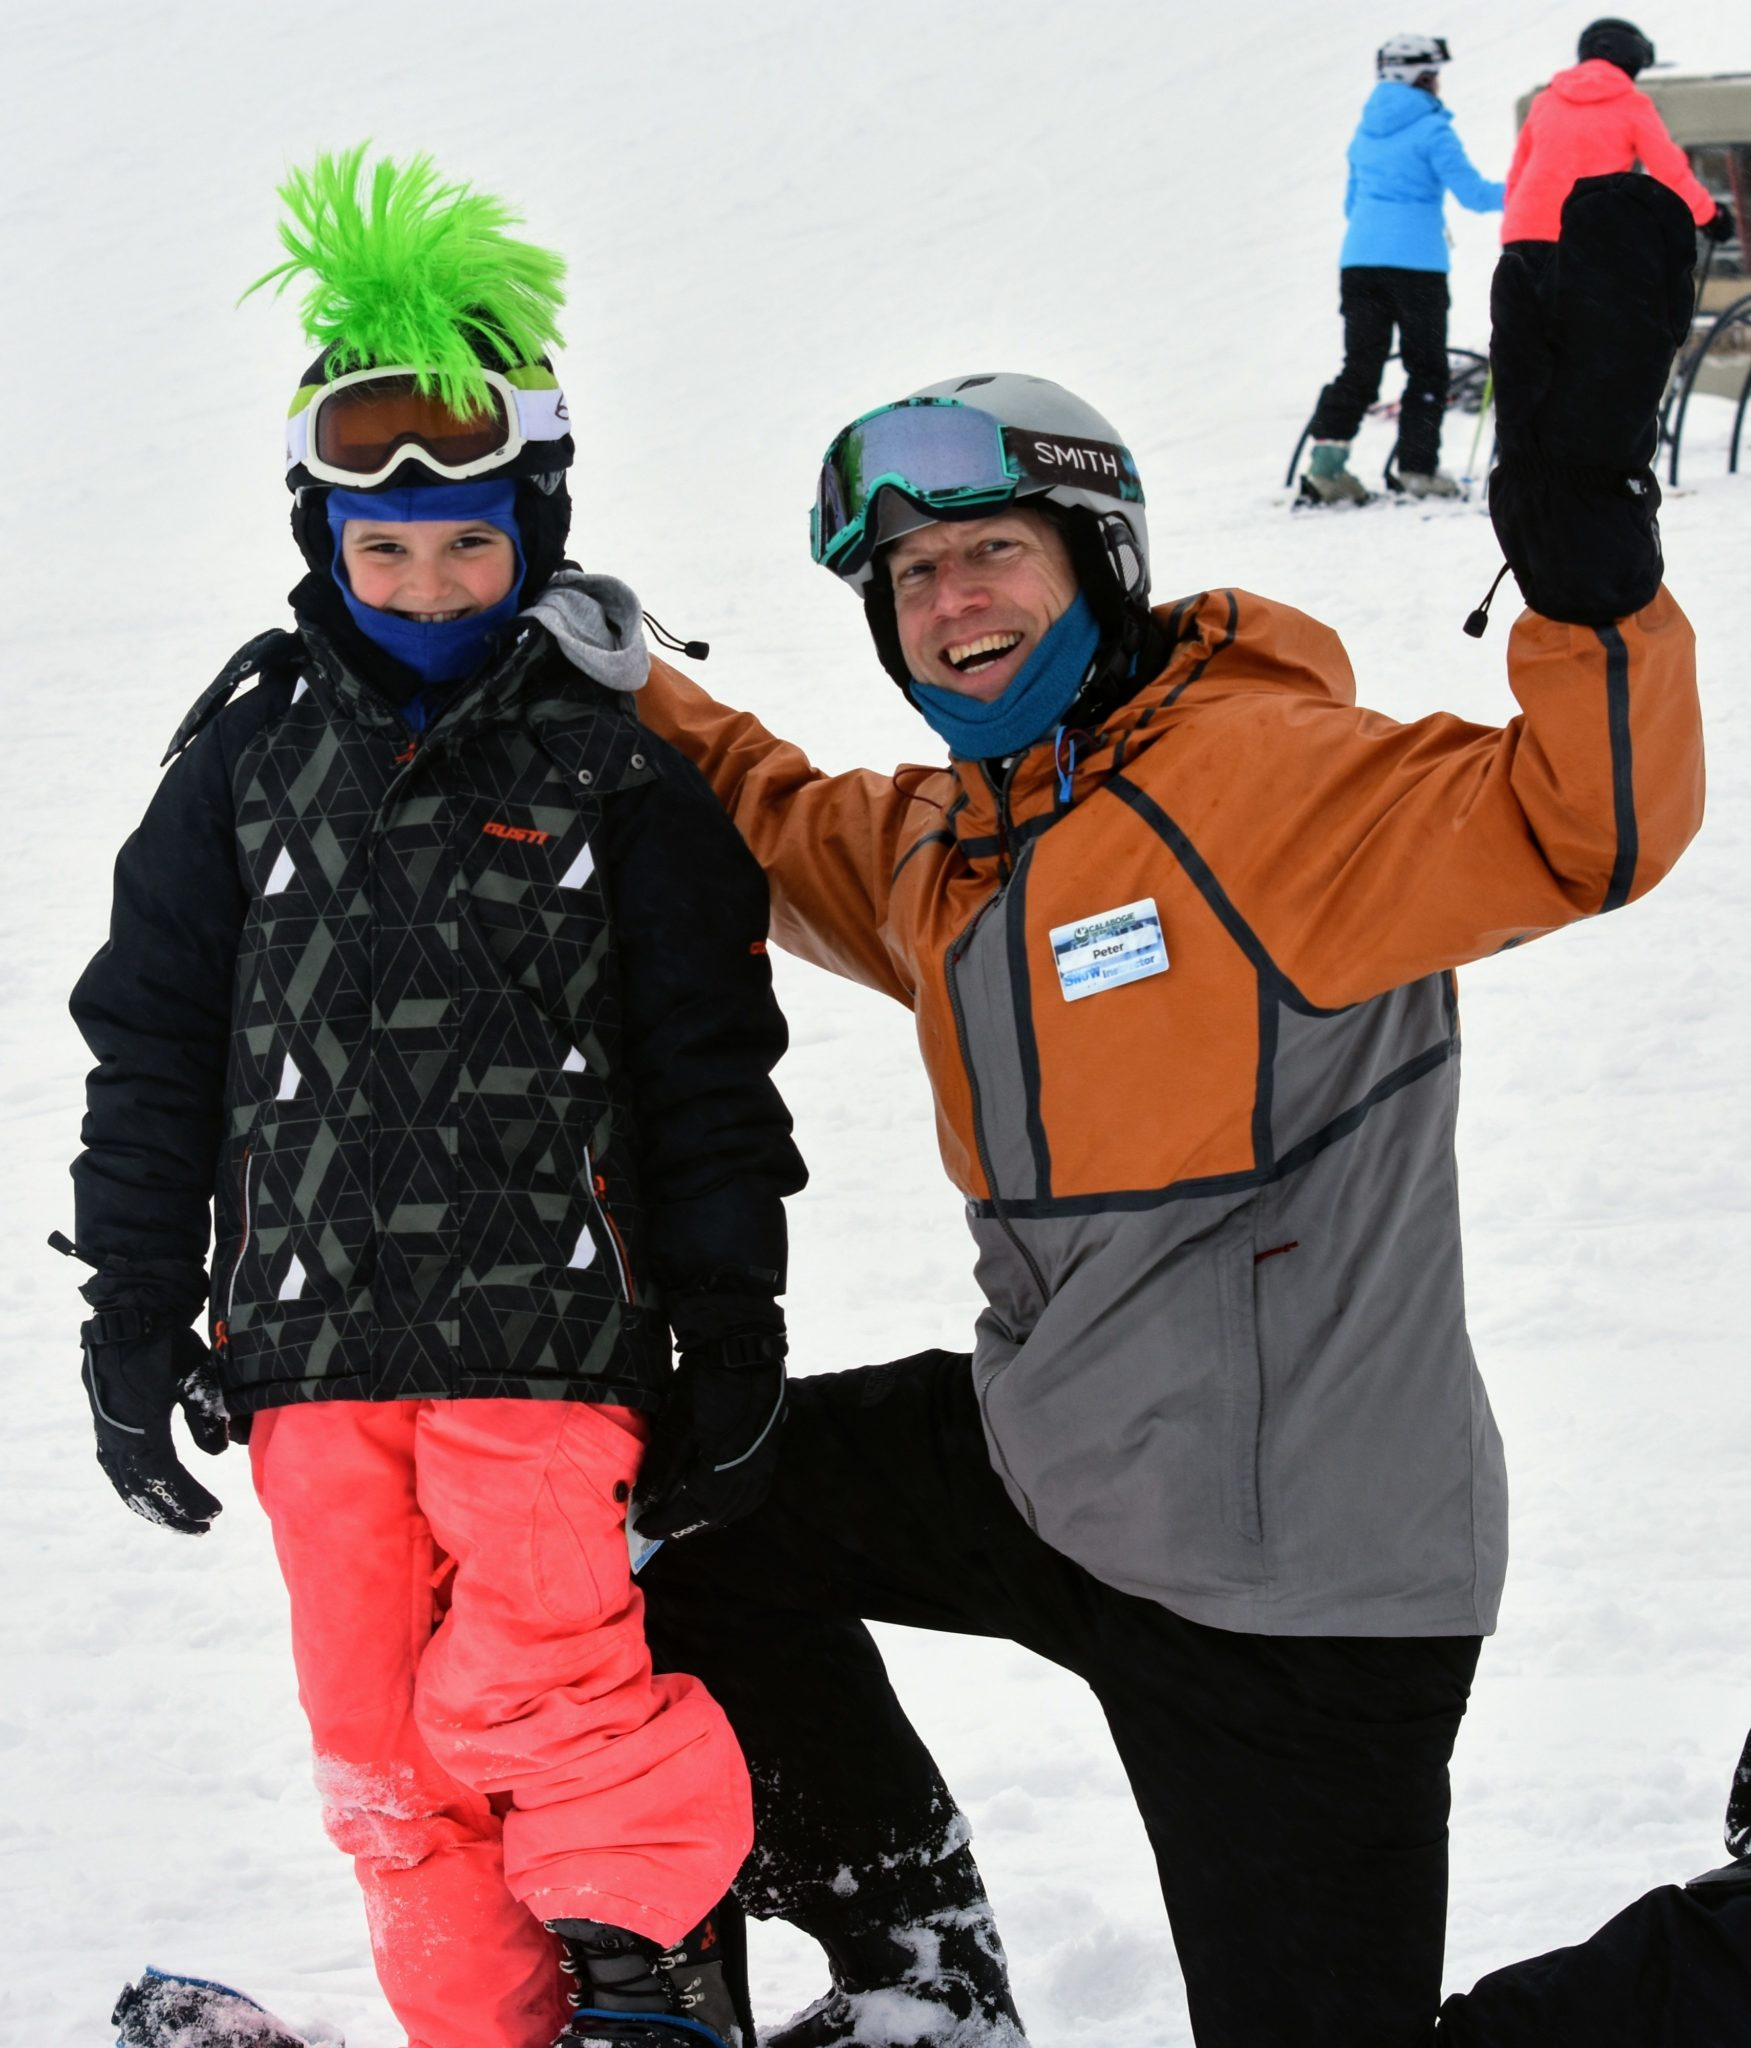 Ski Resort Lessons with snowboard and ski instructor near Ottawa